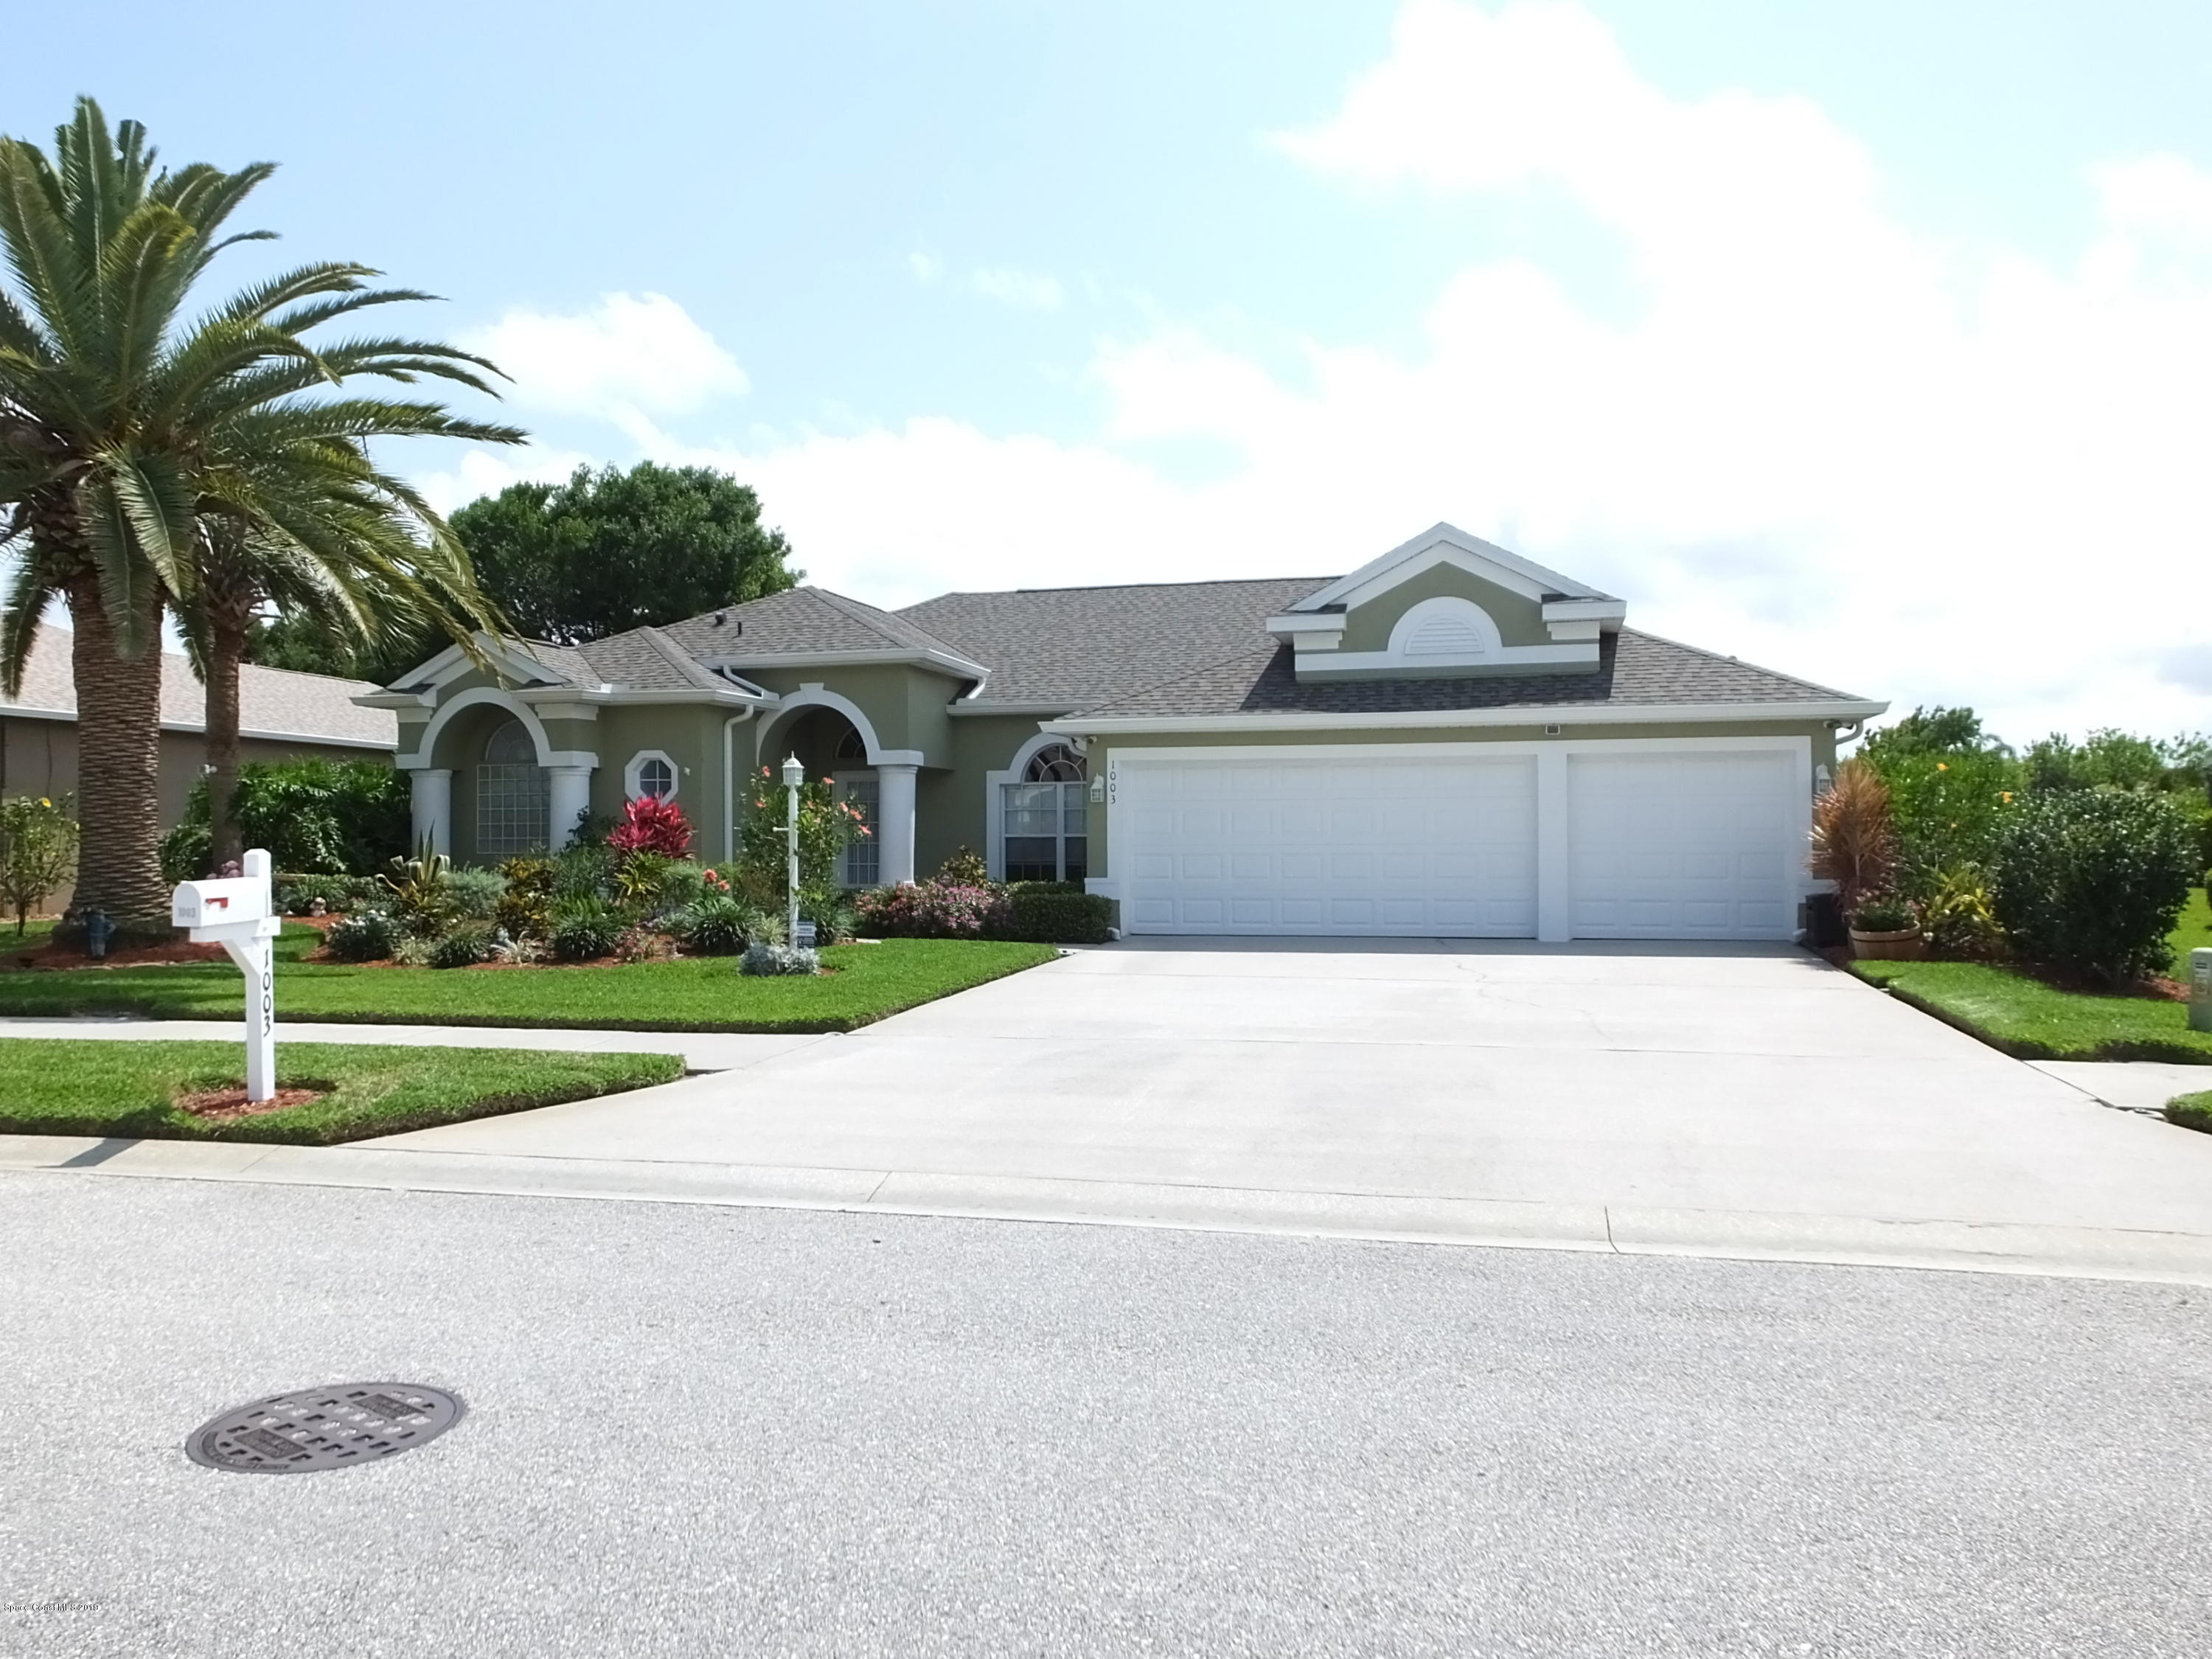 Single Family Homes for Sale at 1003 Fostoria Melbourne, Florida 32940 United States